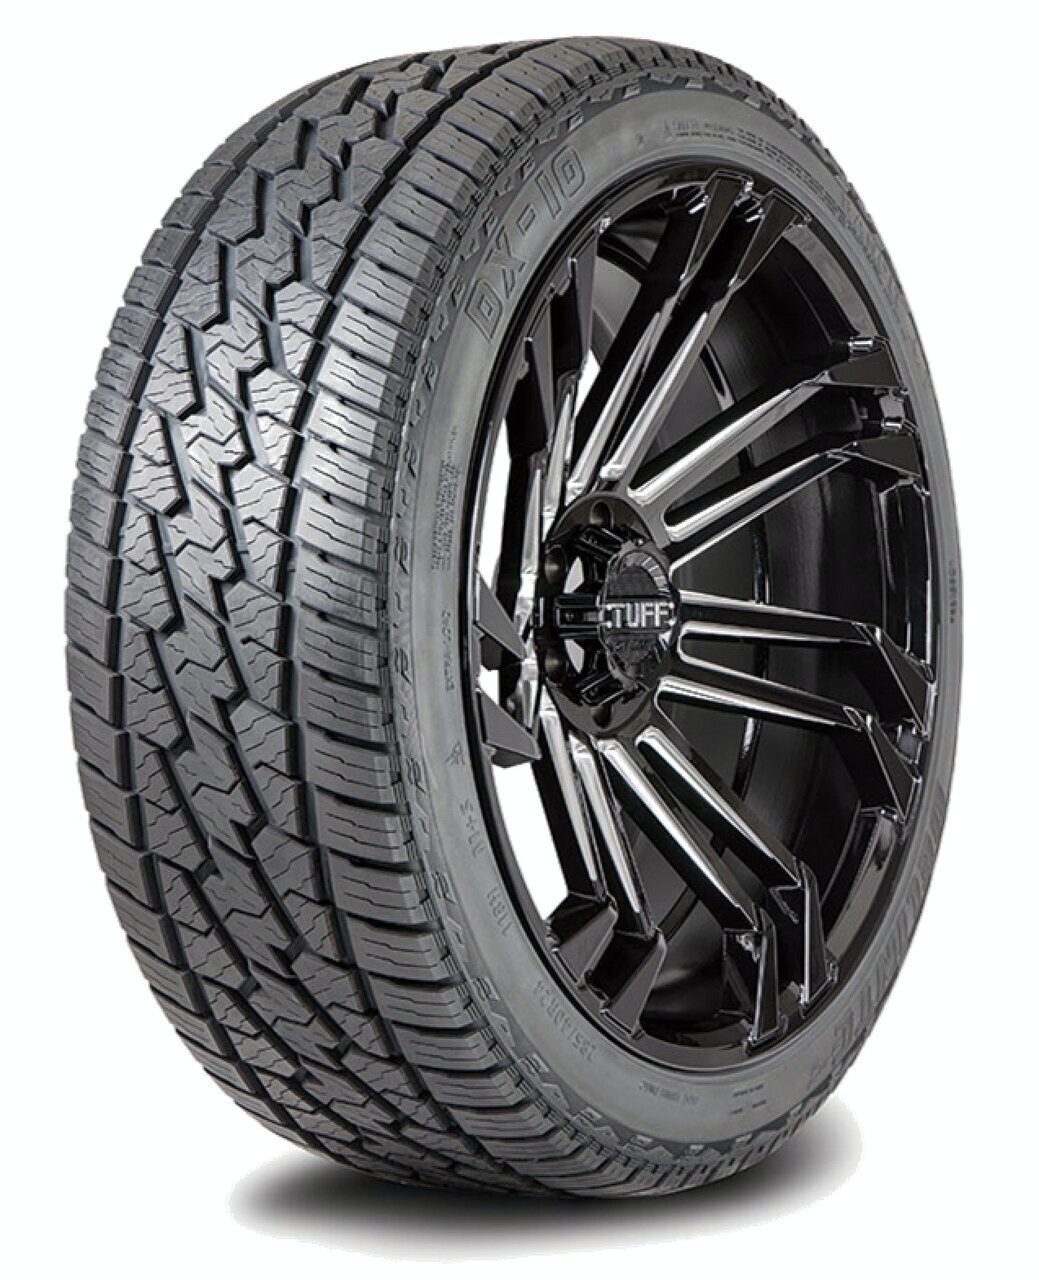 LT235/80R17 120/117Q E/10 DELINTE DX-10 AT BW